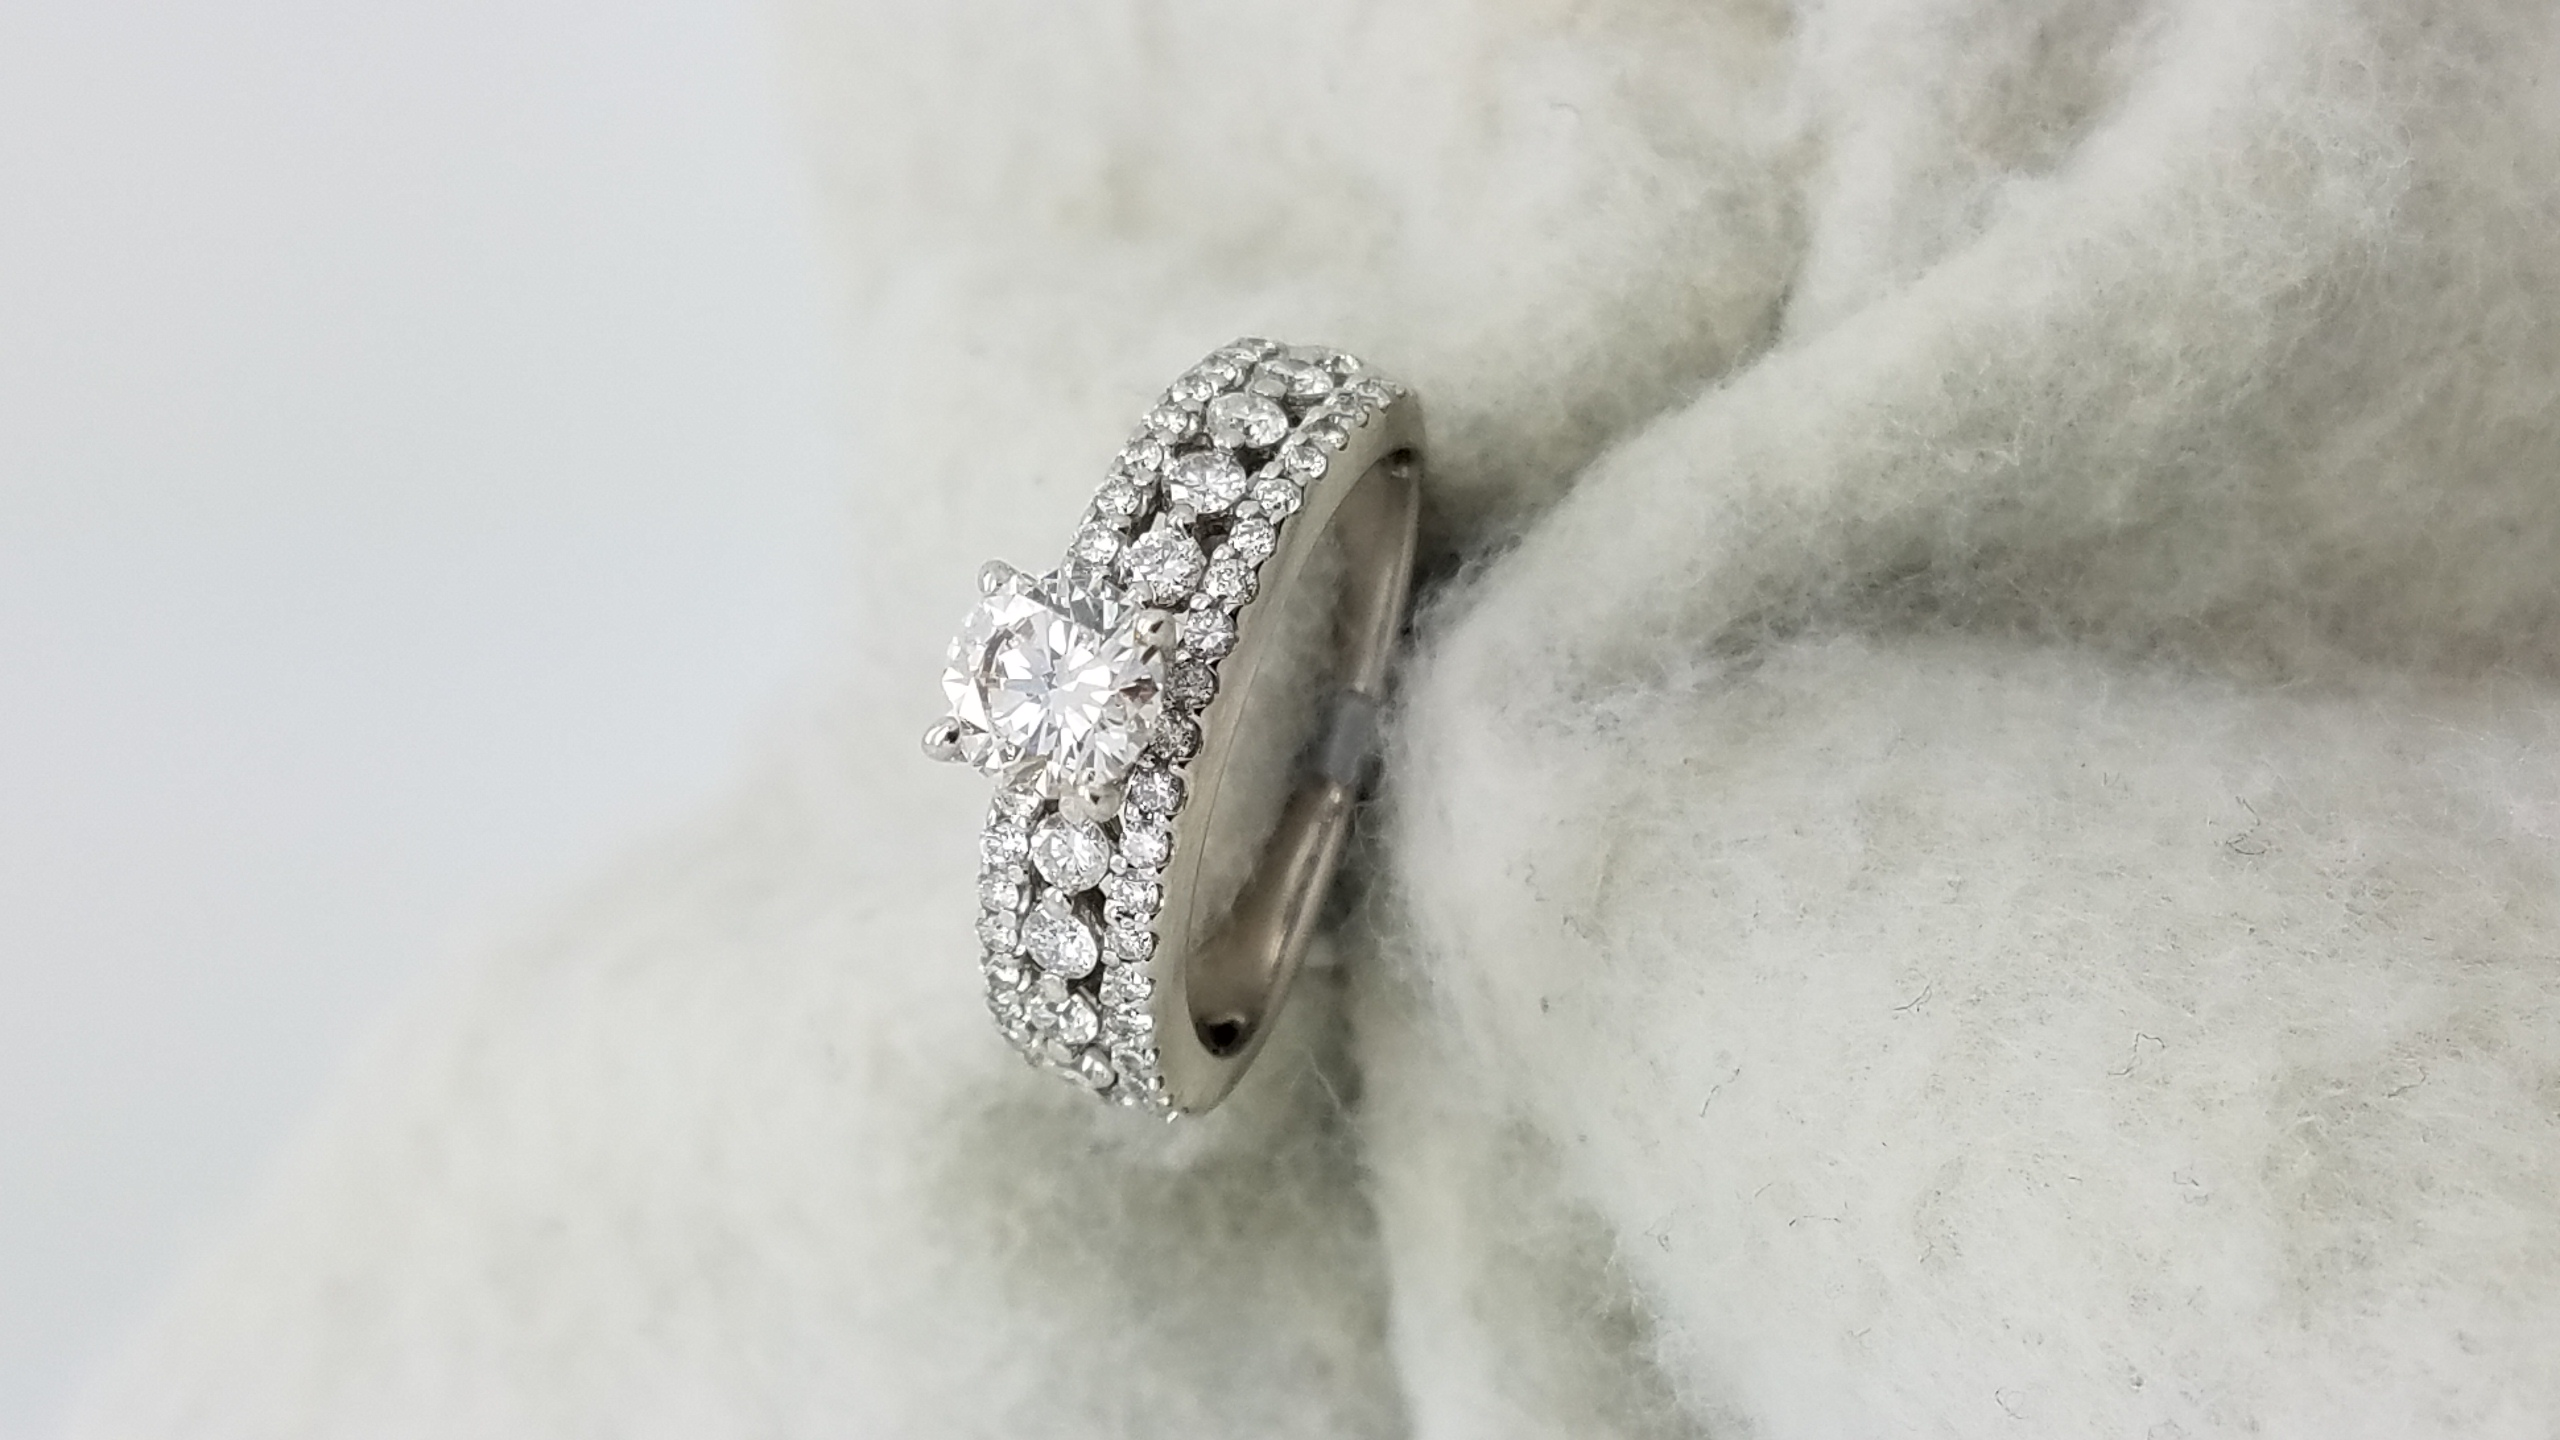 14KWhite GoldLace style mounting.57 + .65ct.RCutDiamondHVS24-prong/paveSolitaire with AccentsEngagement-Ring